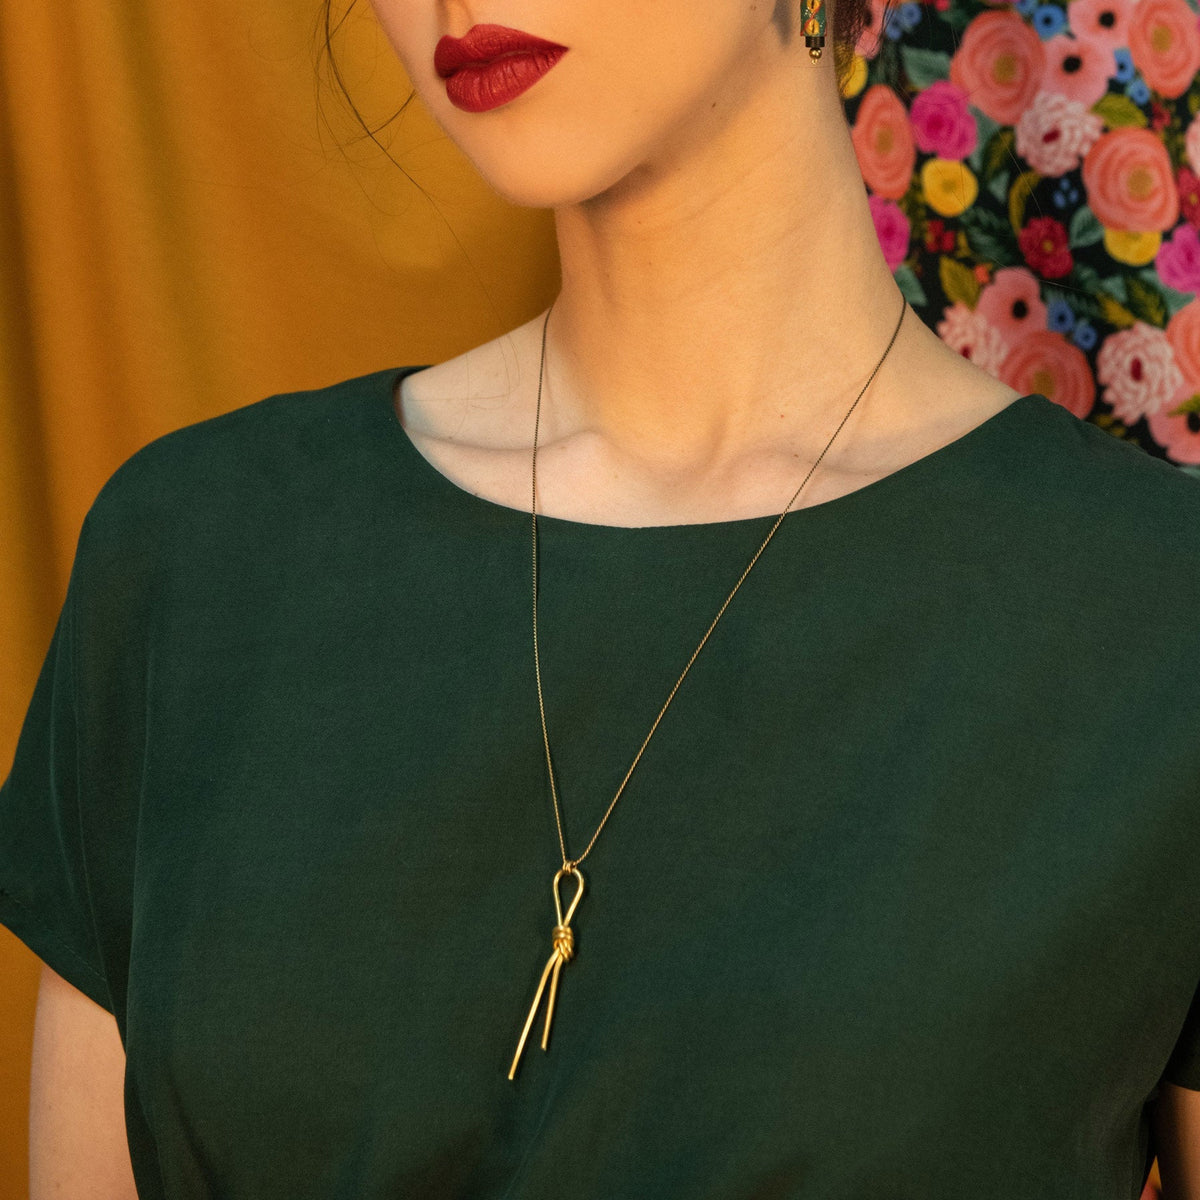 Model Wearing Lodo Necklace - Handcrafted in Brass - Sold by Chic & Basta